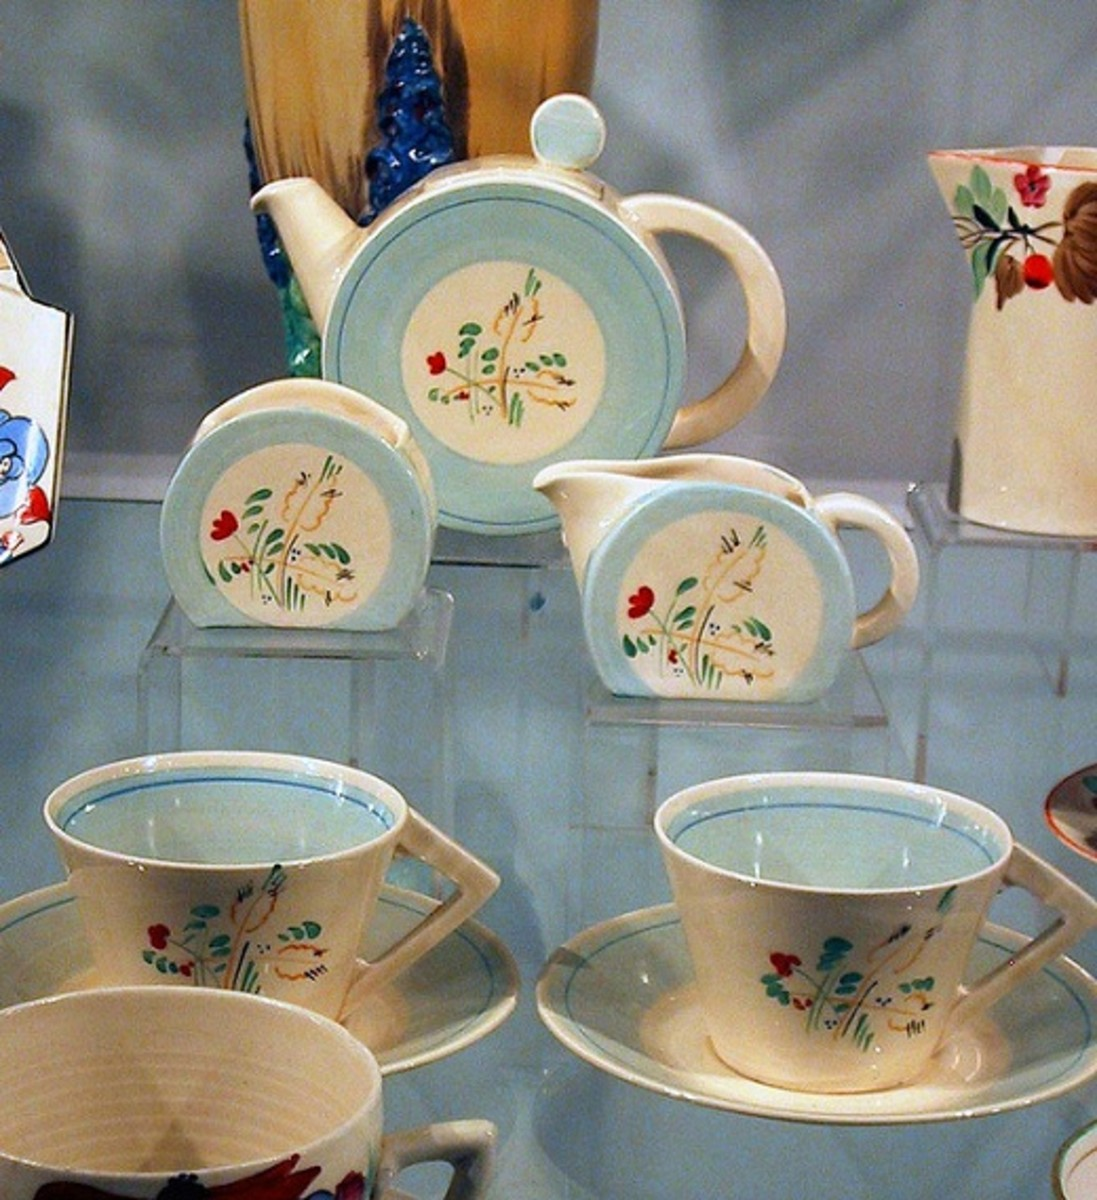 A typical Clarice Cliff Art Deco style tea set.